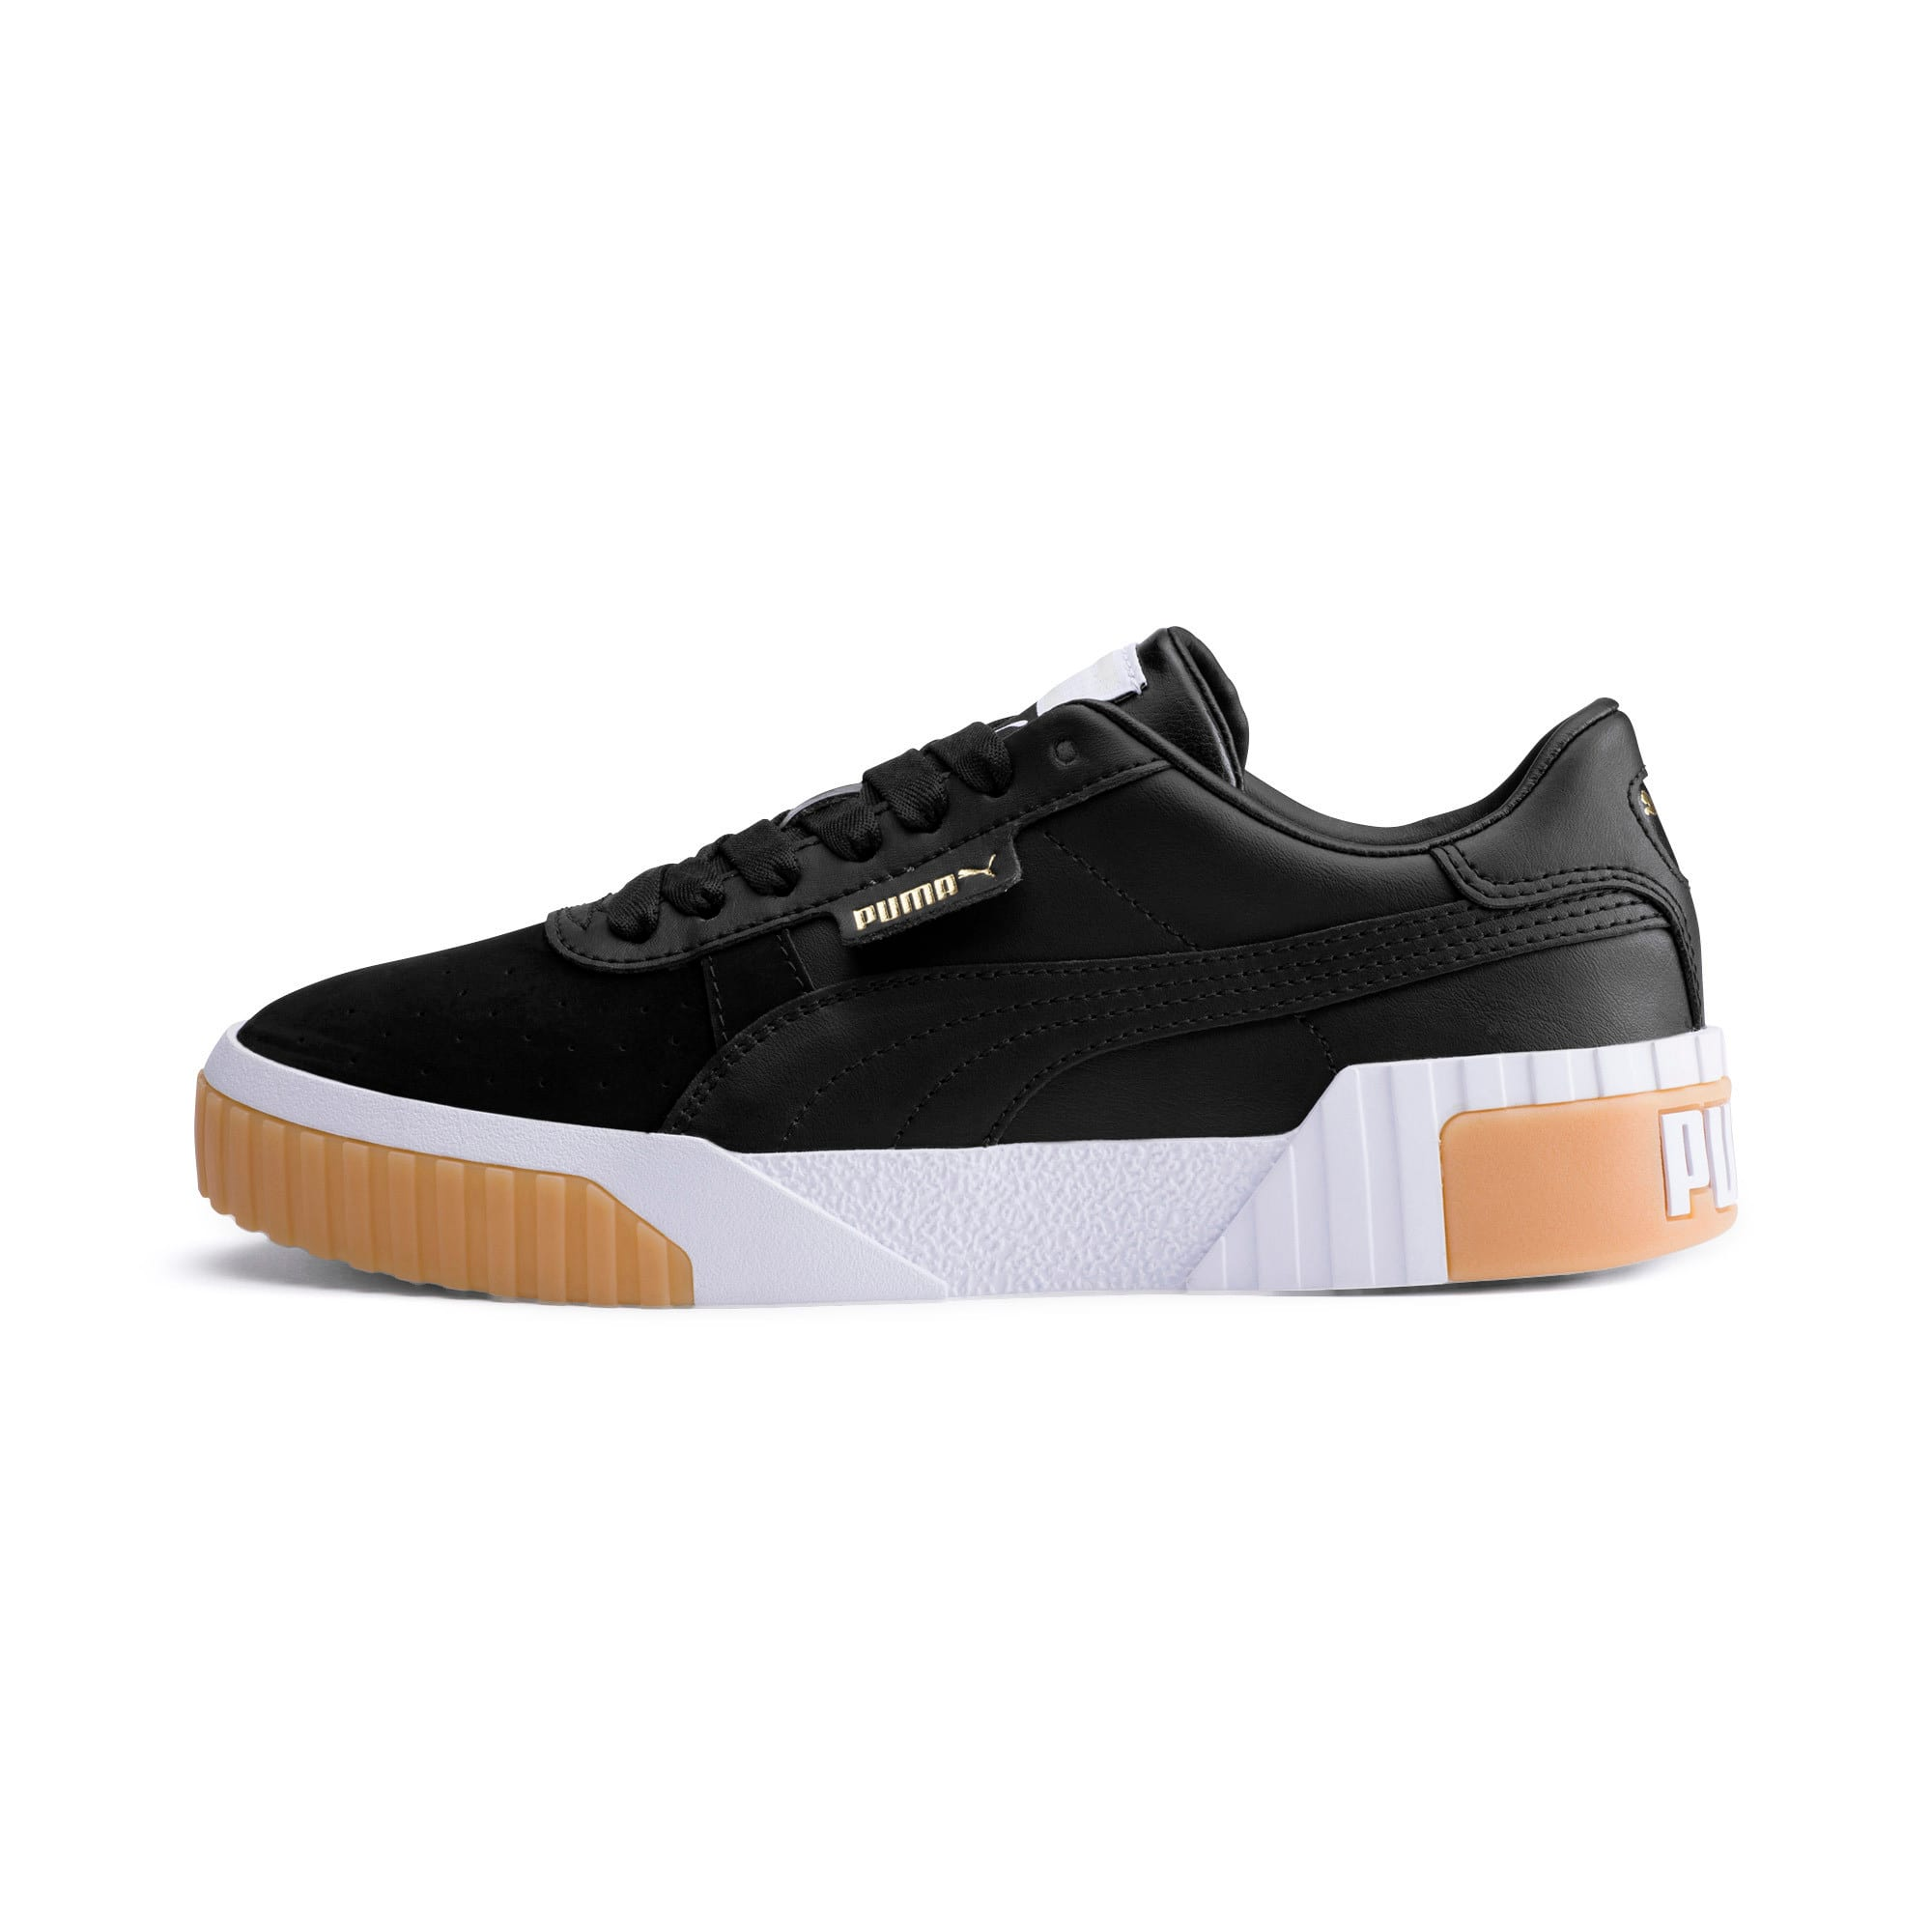 Thumbnail 1 of Cali Exotic Women's Trainers, Puma Black-Puma Black, medium